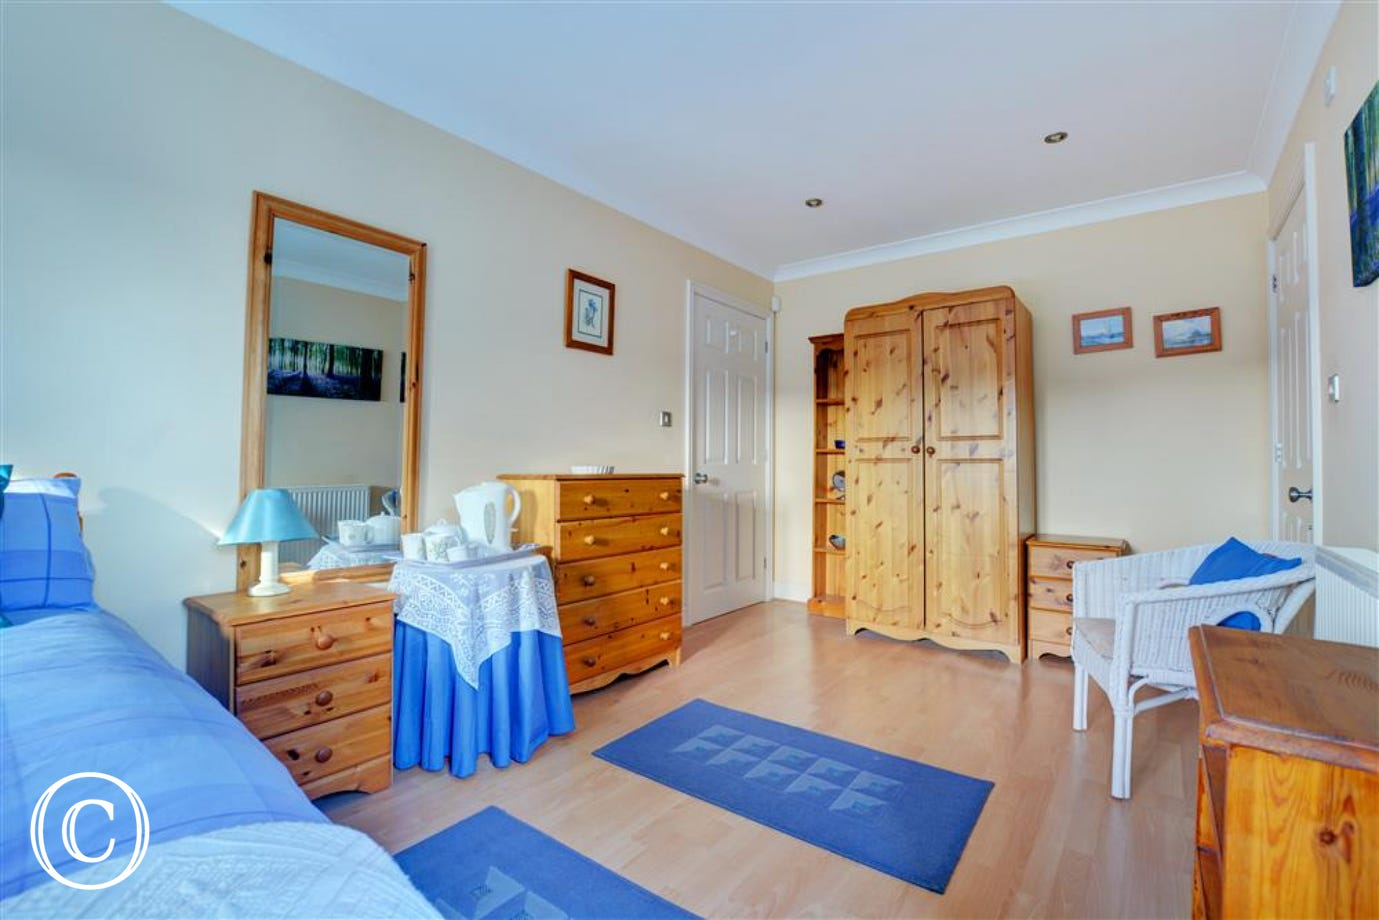 Bedroom one is a very spacious room with the added benefit of an en suite shower room